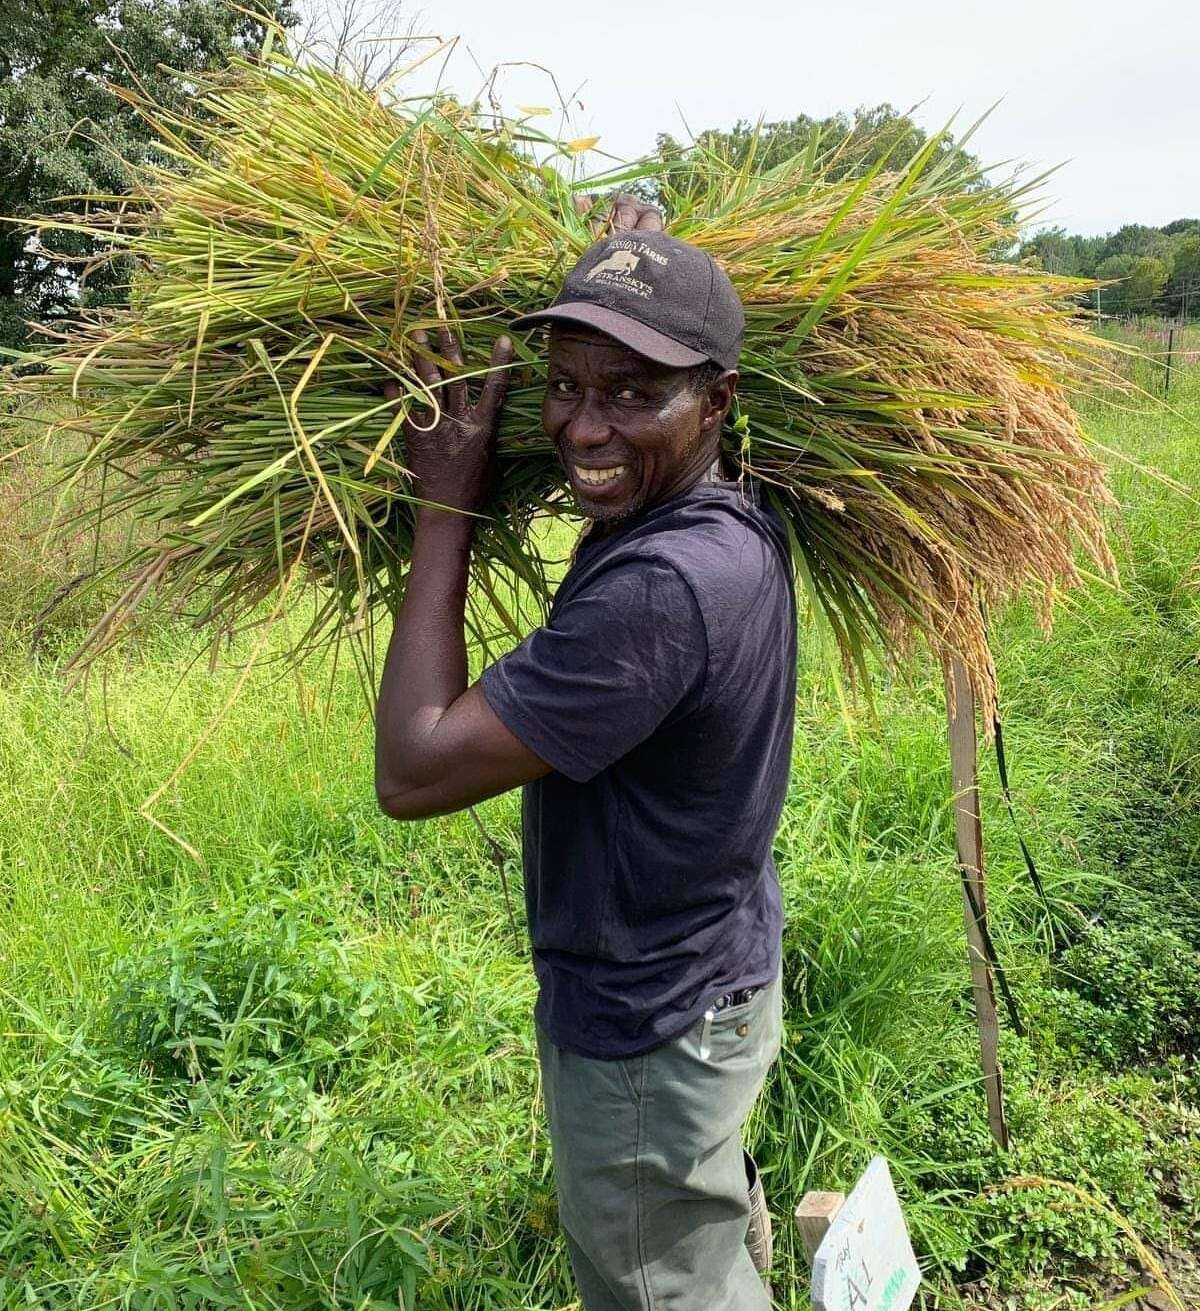 Ever-Growing Family Farm in Ulster Park is New York state's first commercial rice farm, and farmers Dawn Hoyte and Nfamara Badjie use the traditional rice growing methods of Gambia's Jola tribe, of which Badjie, pictured, is a member. As rainfall continues to increase in the region - a nearby weather center reported an average of 9.1 more inches of rain in 2010 than in 1957 - it might not be such a novel crop.